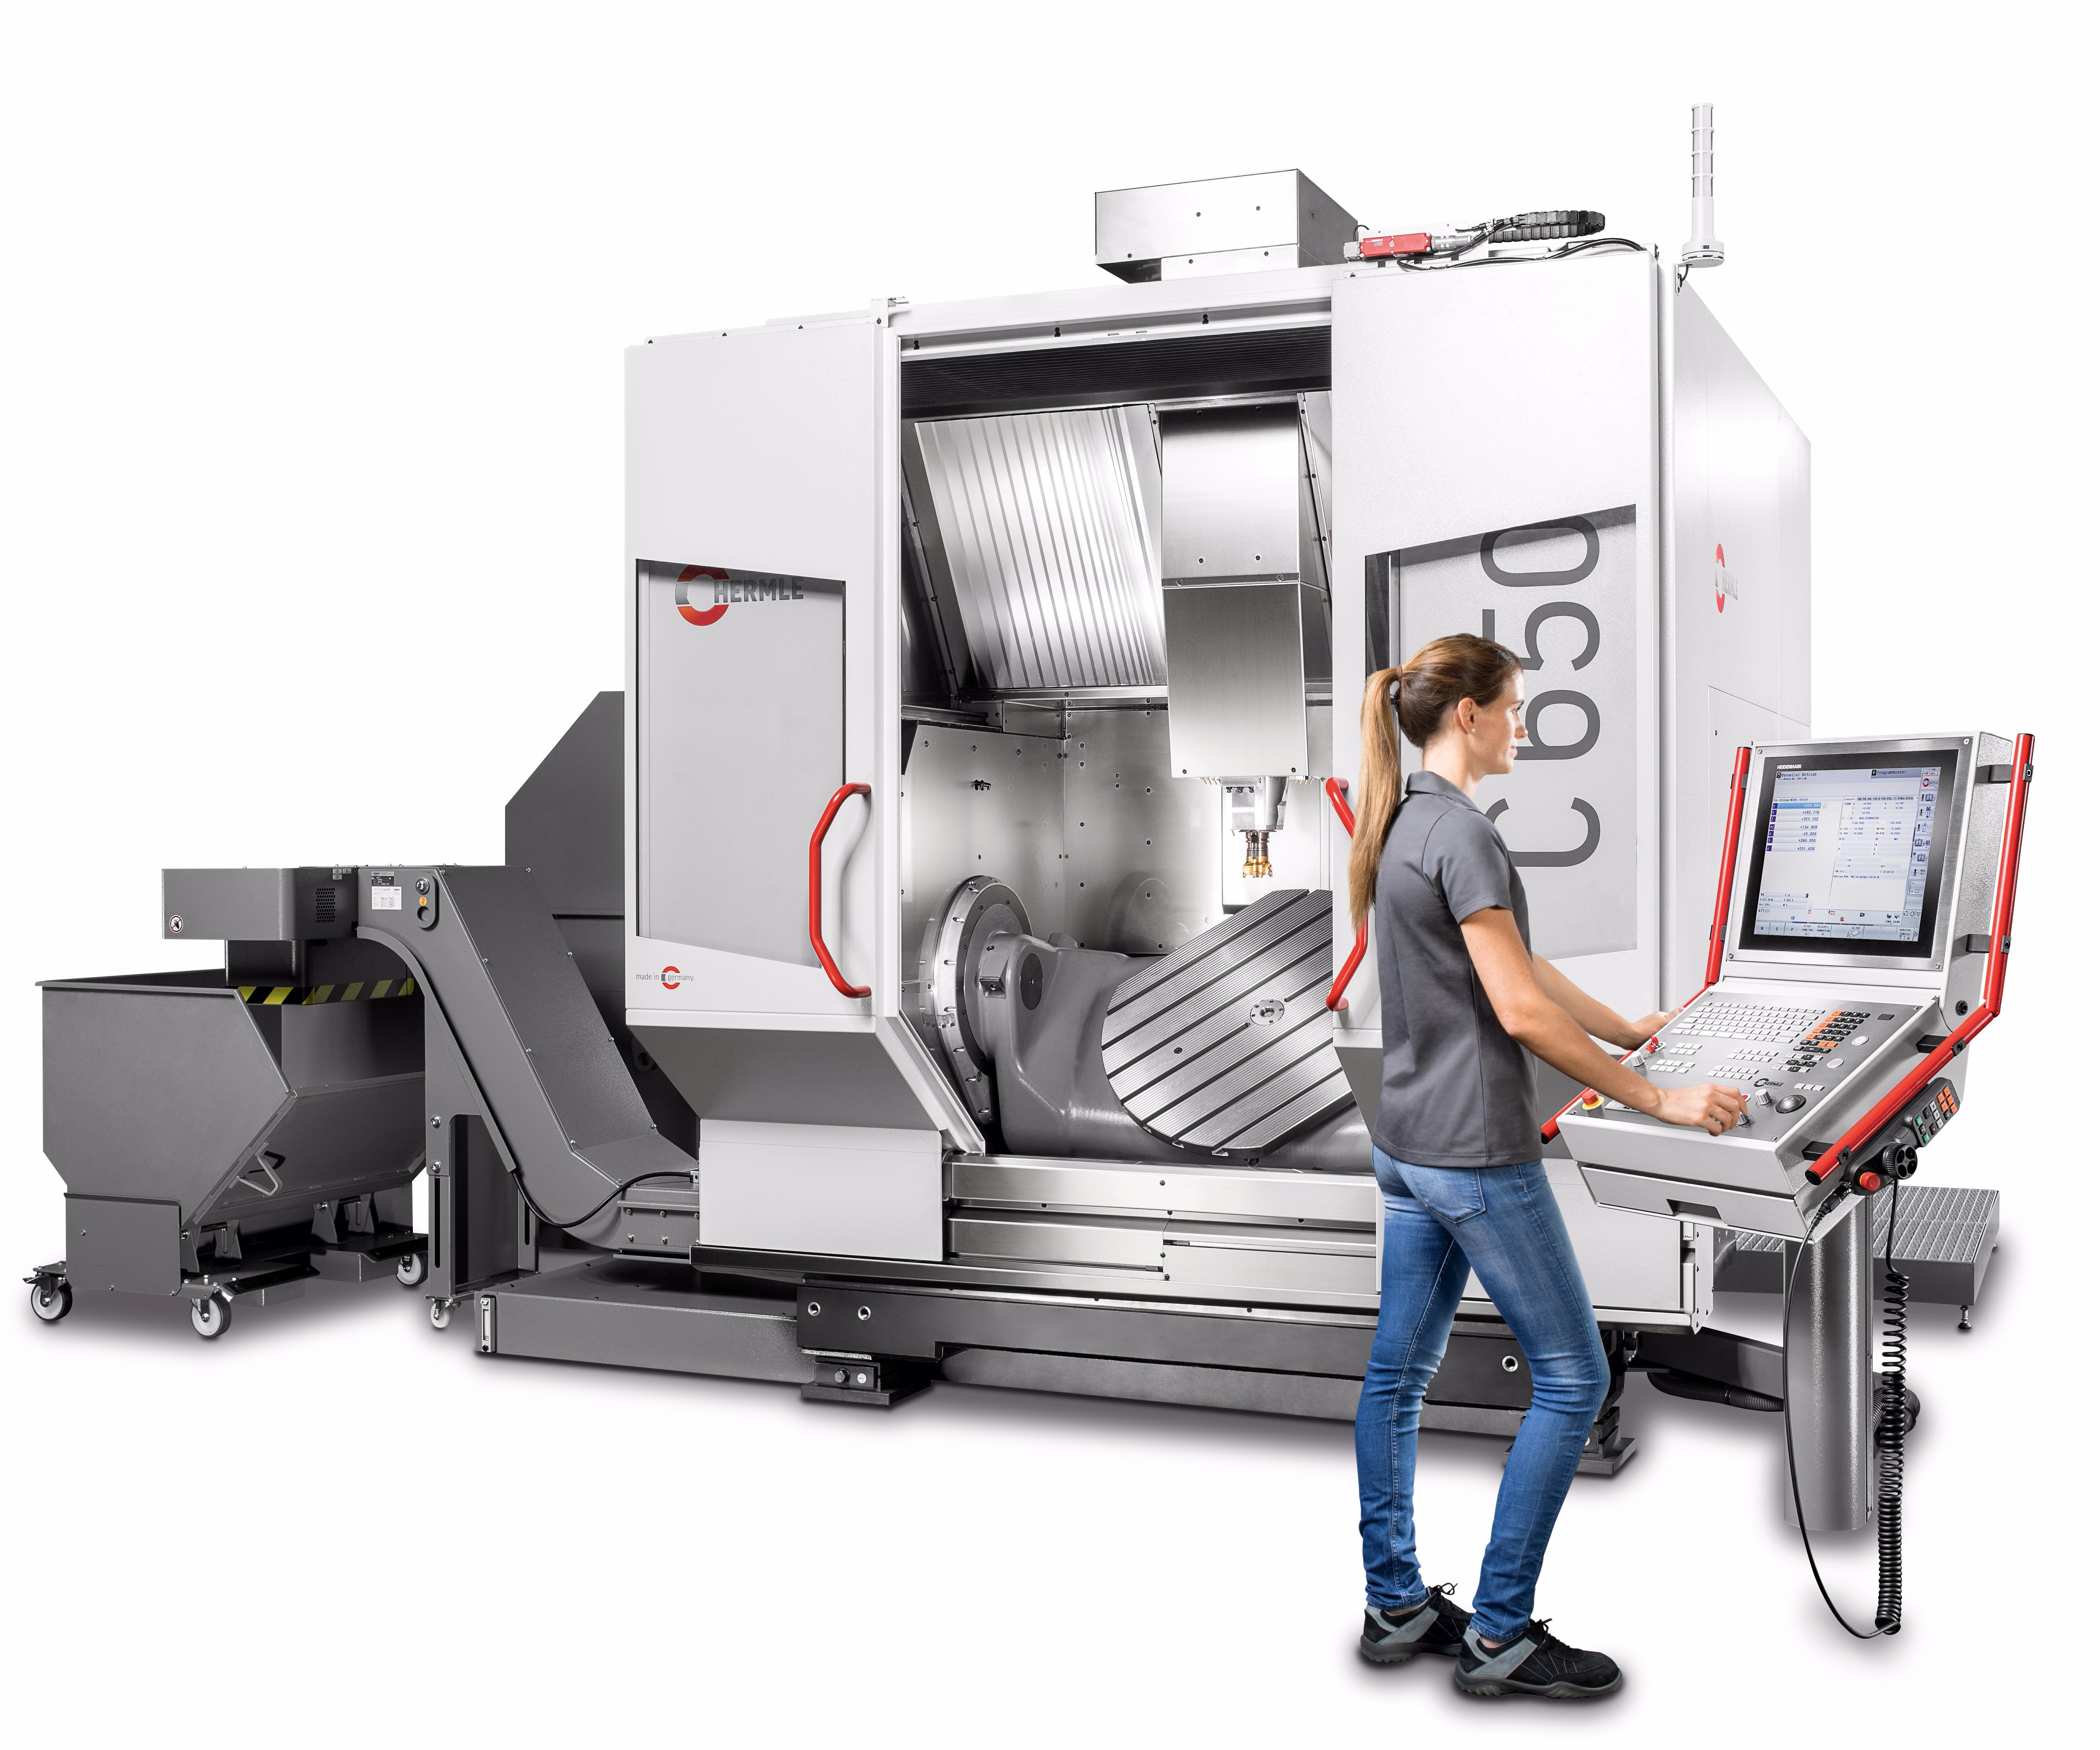 Hermle's C 650 five-axis machining center